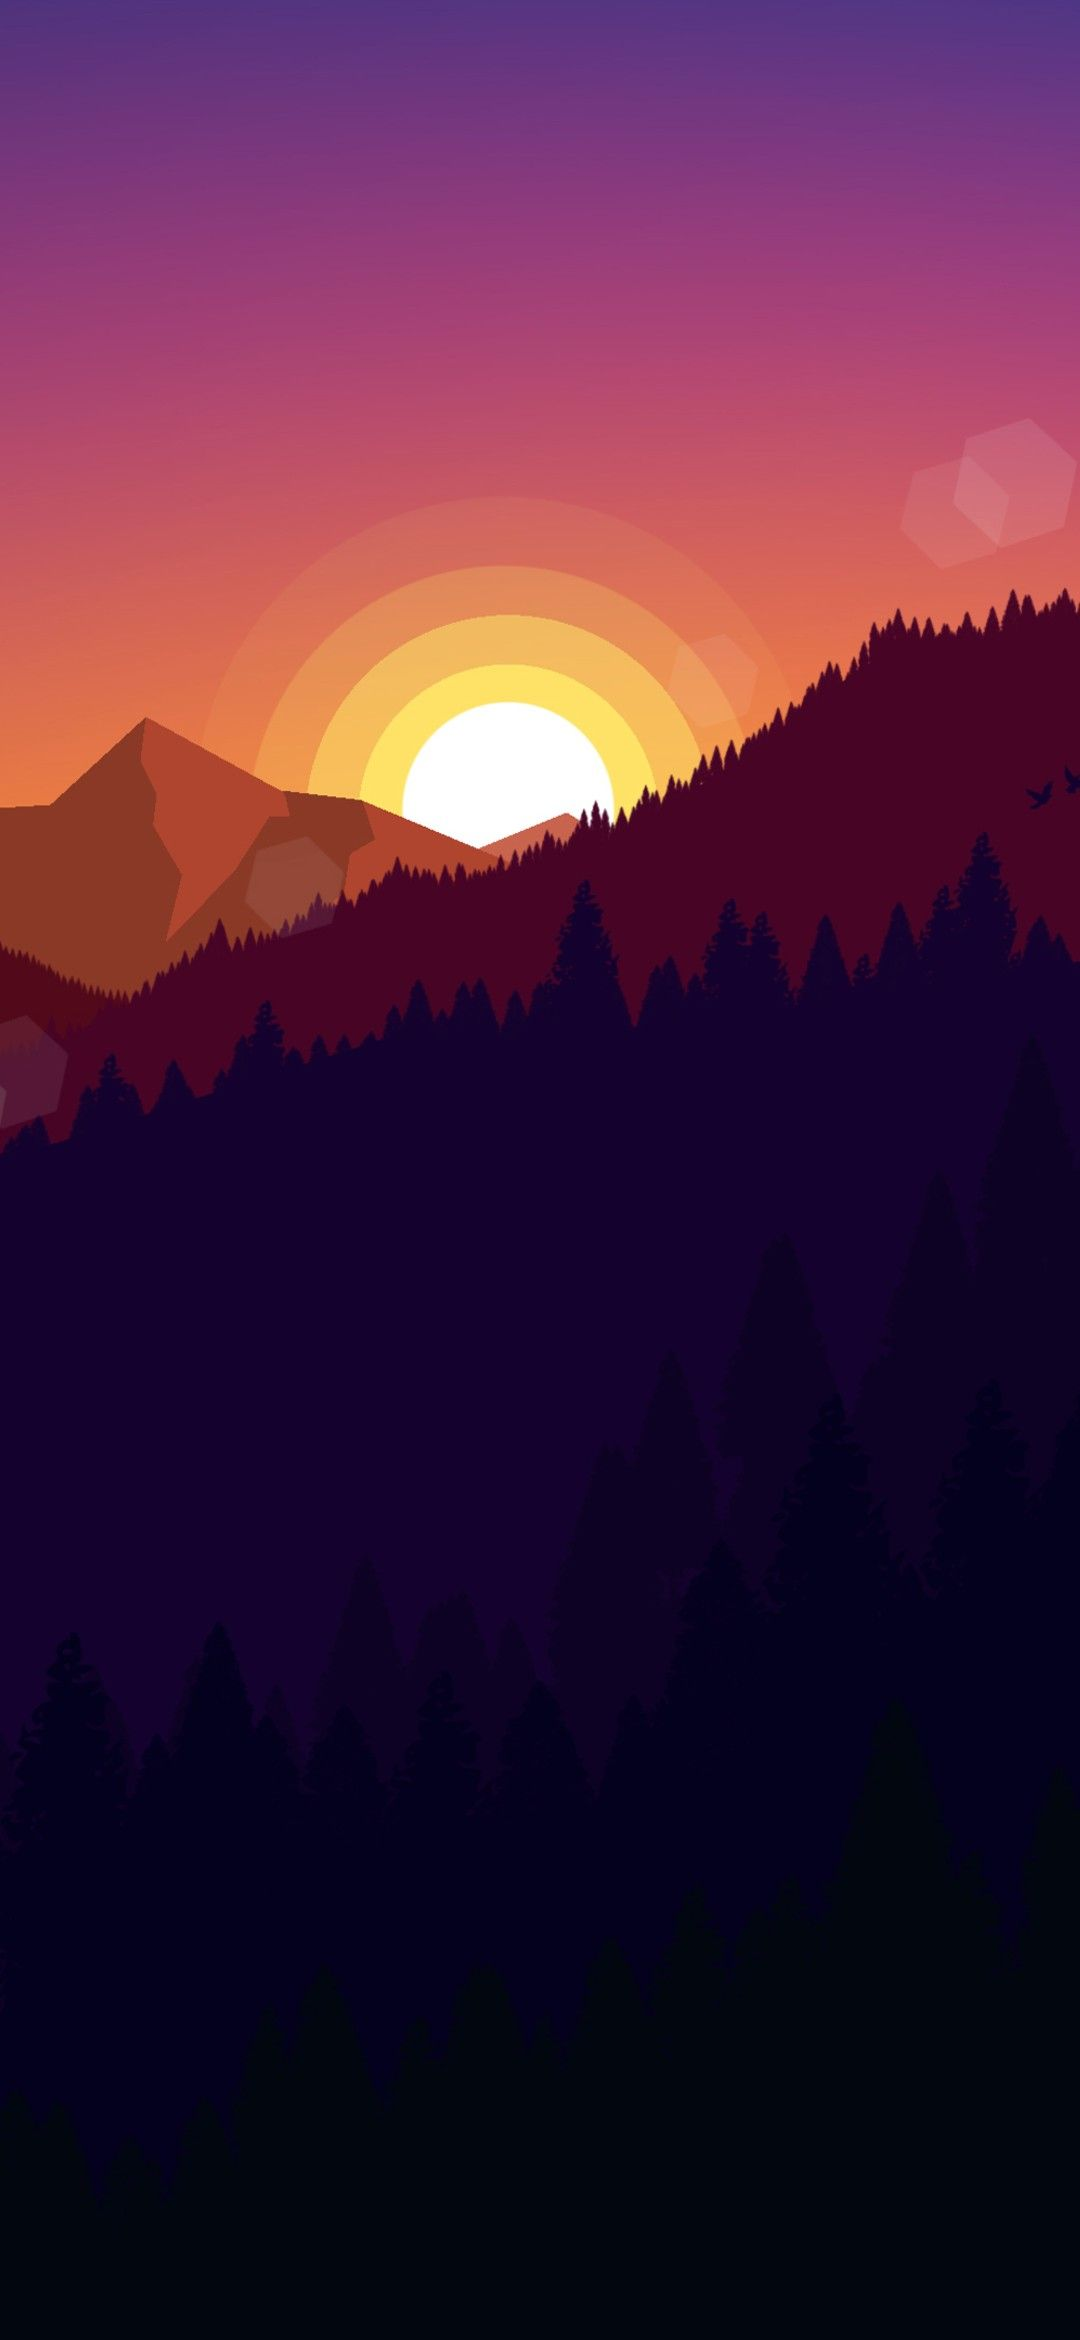 Mountain Sunset Minimal Wallpaper 1080x2340 In 2020 Scenery Wallpaper Minimal Wallpaper Sunset Nature